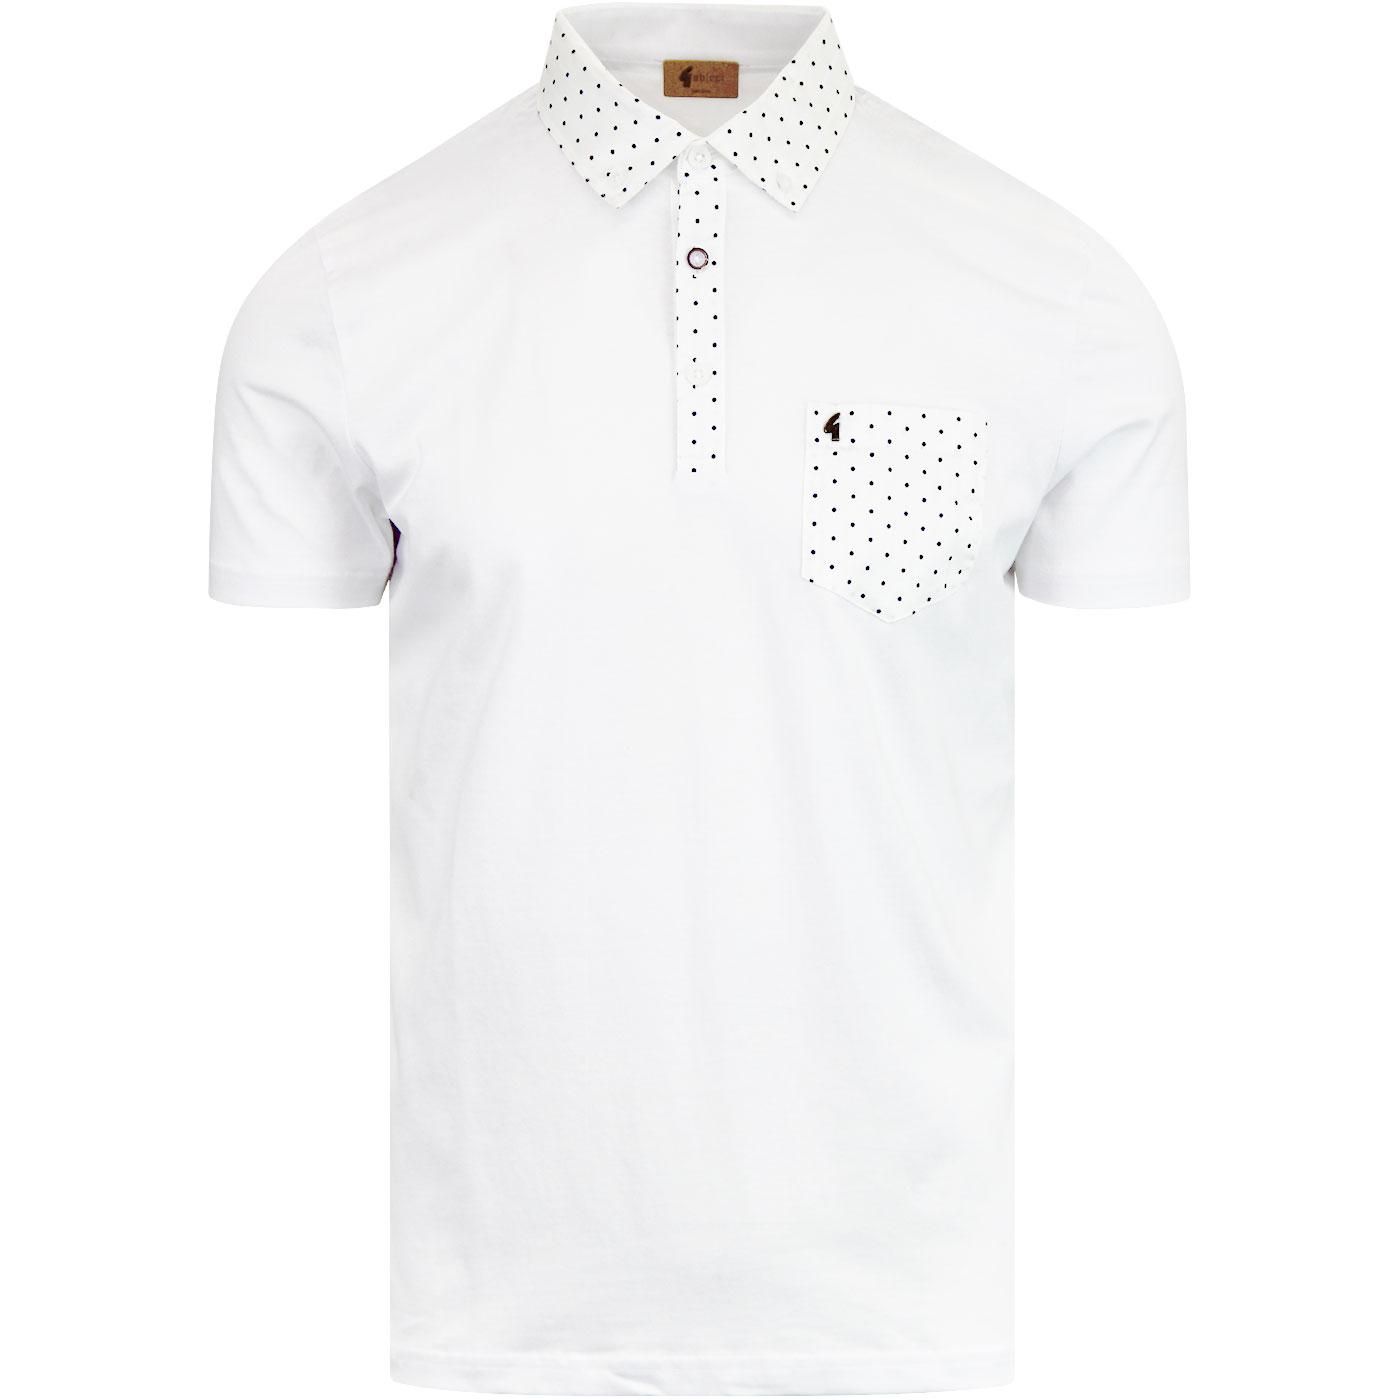 Kemble GABICCI VINTAGE Mod Polka Dot Shirting Polo